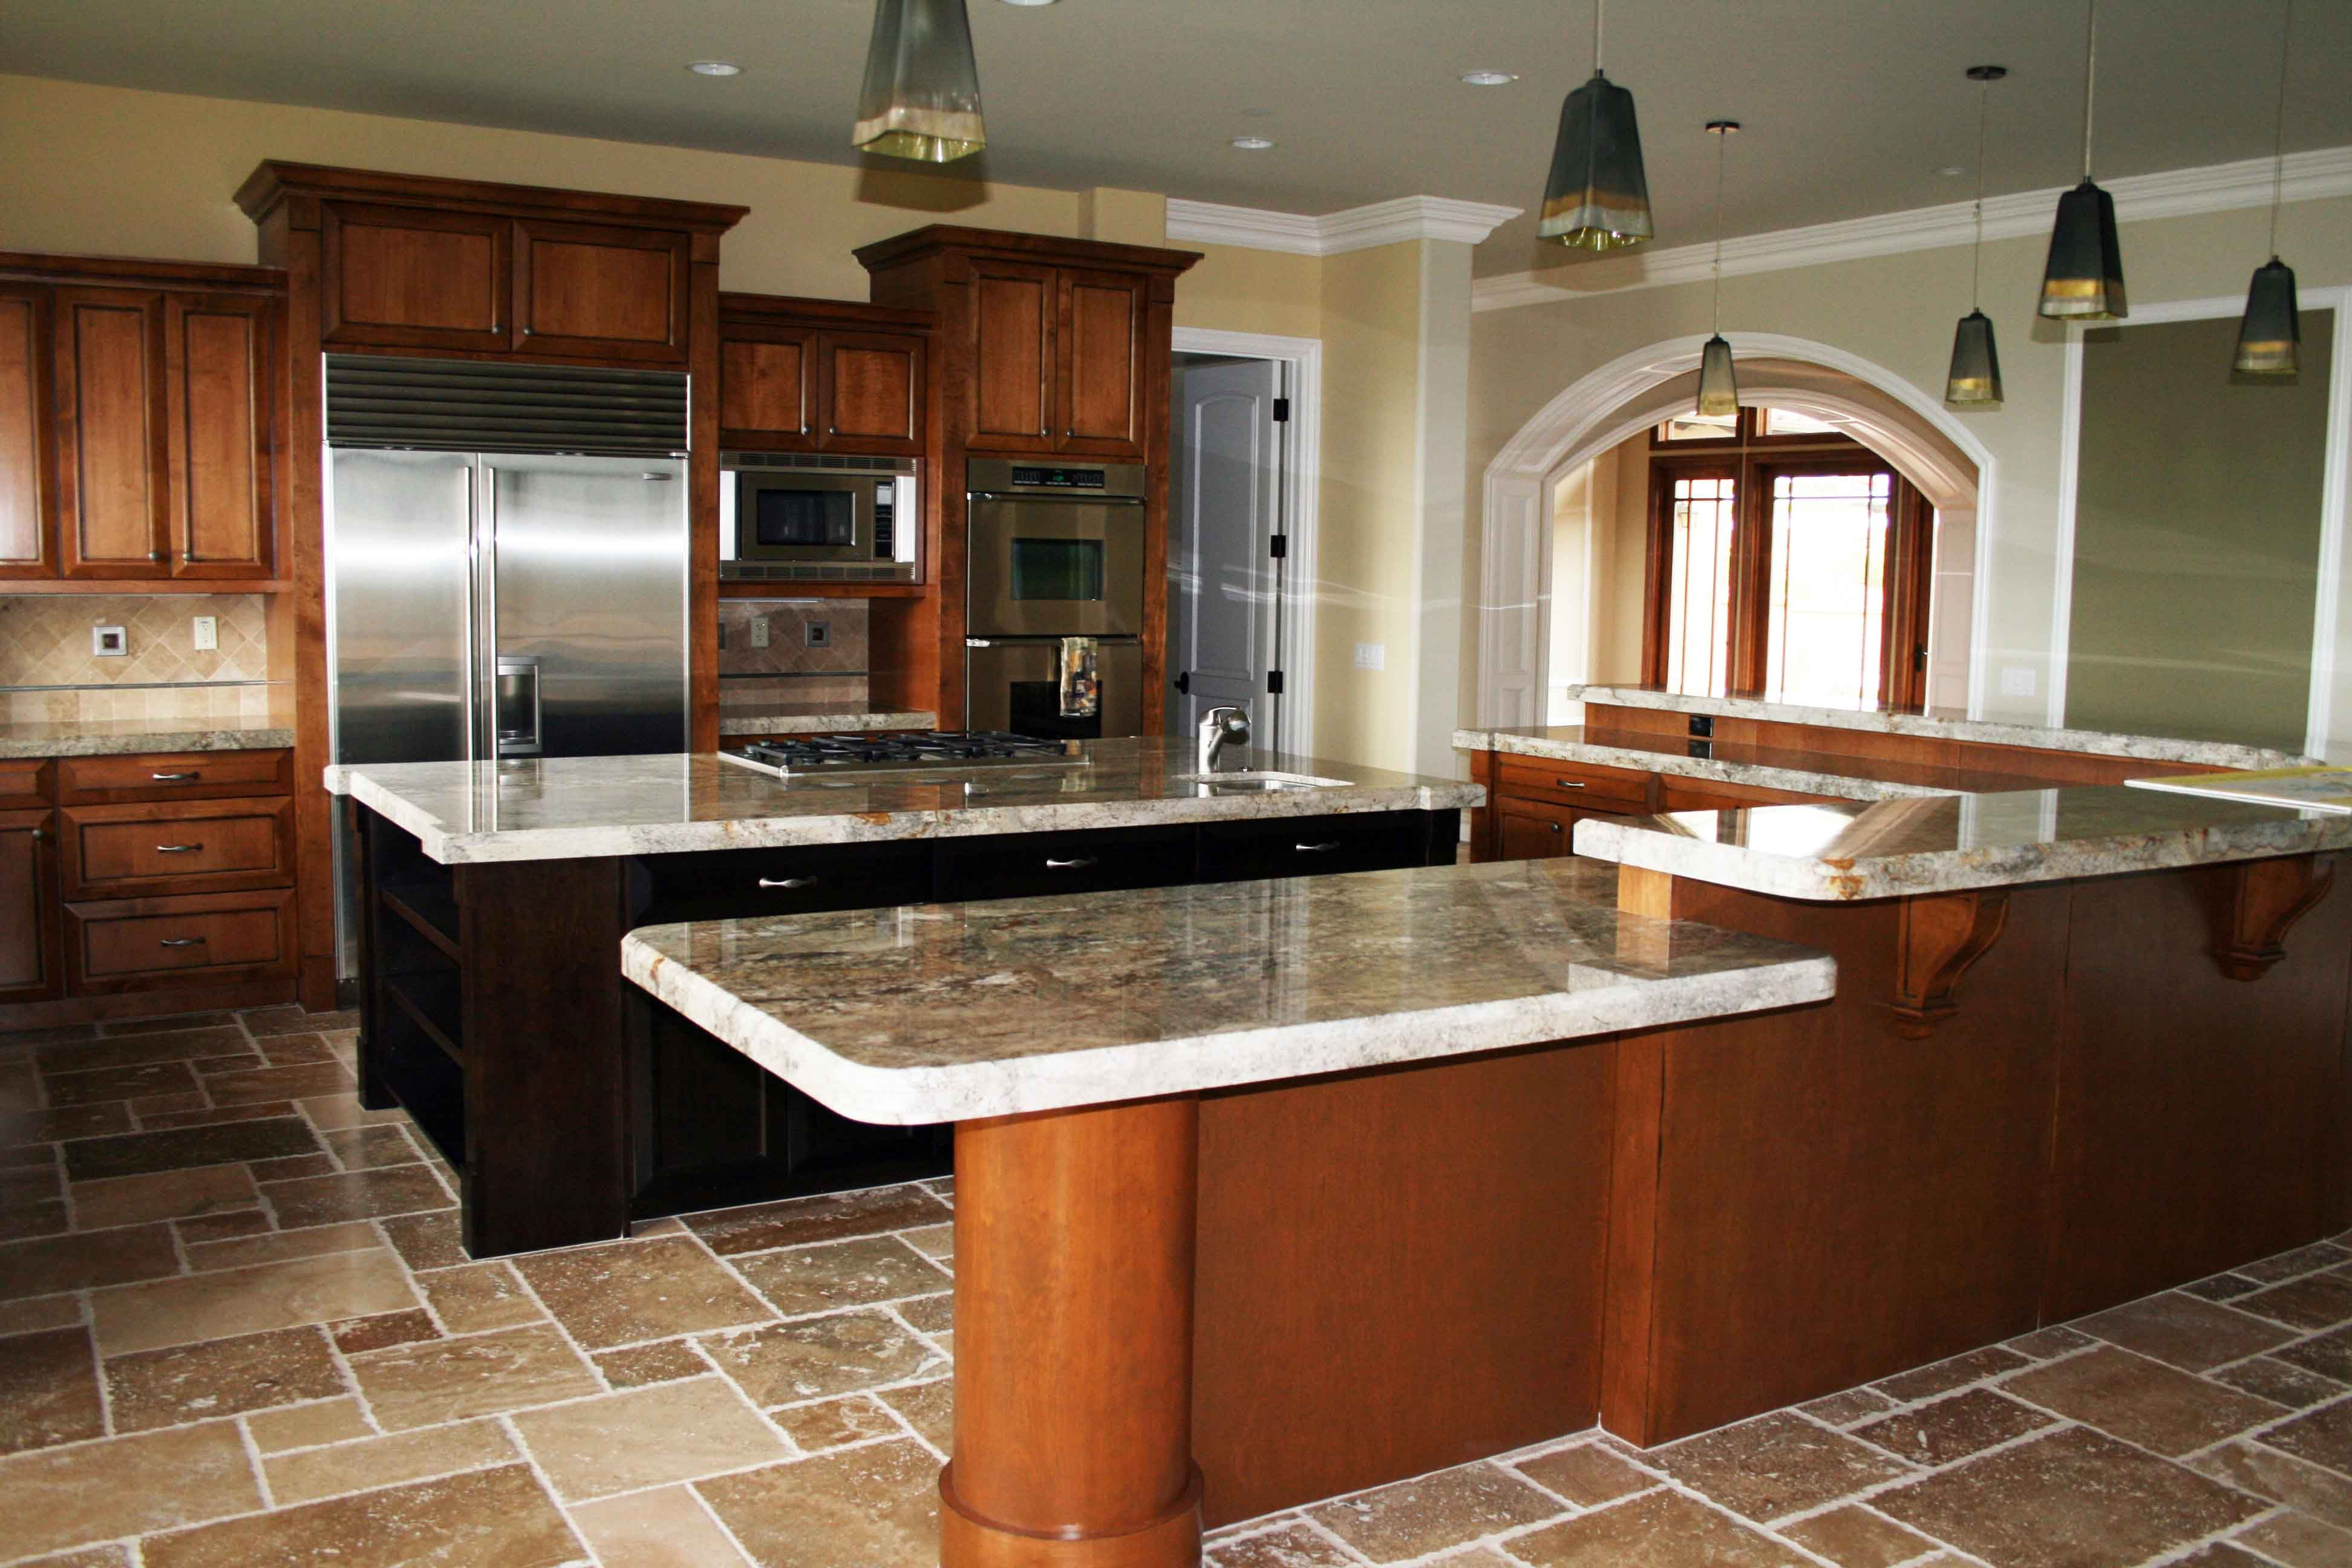 us kitchen cabinet manufacturers صور مطابخ امريكاني مودرن 2017 احدث ديكور مطبخ سوبر كايرو 27771